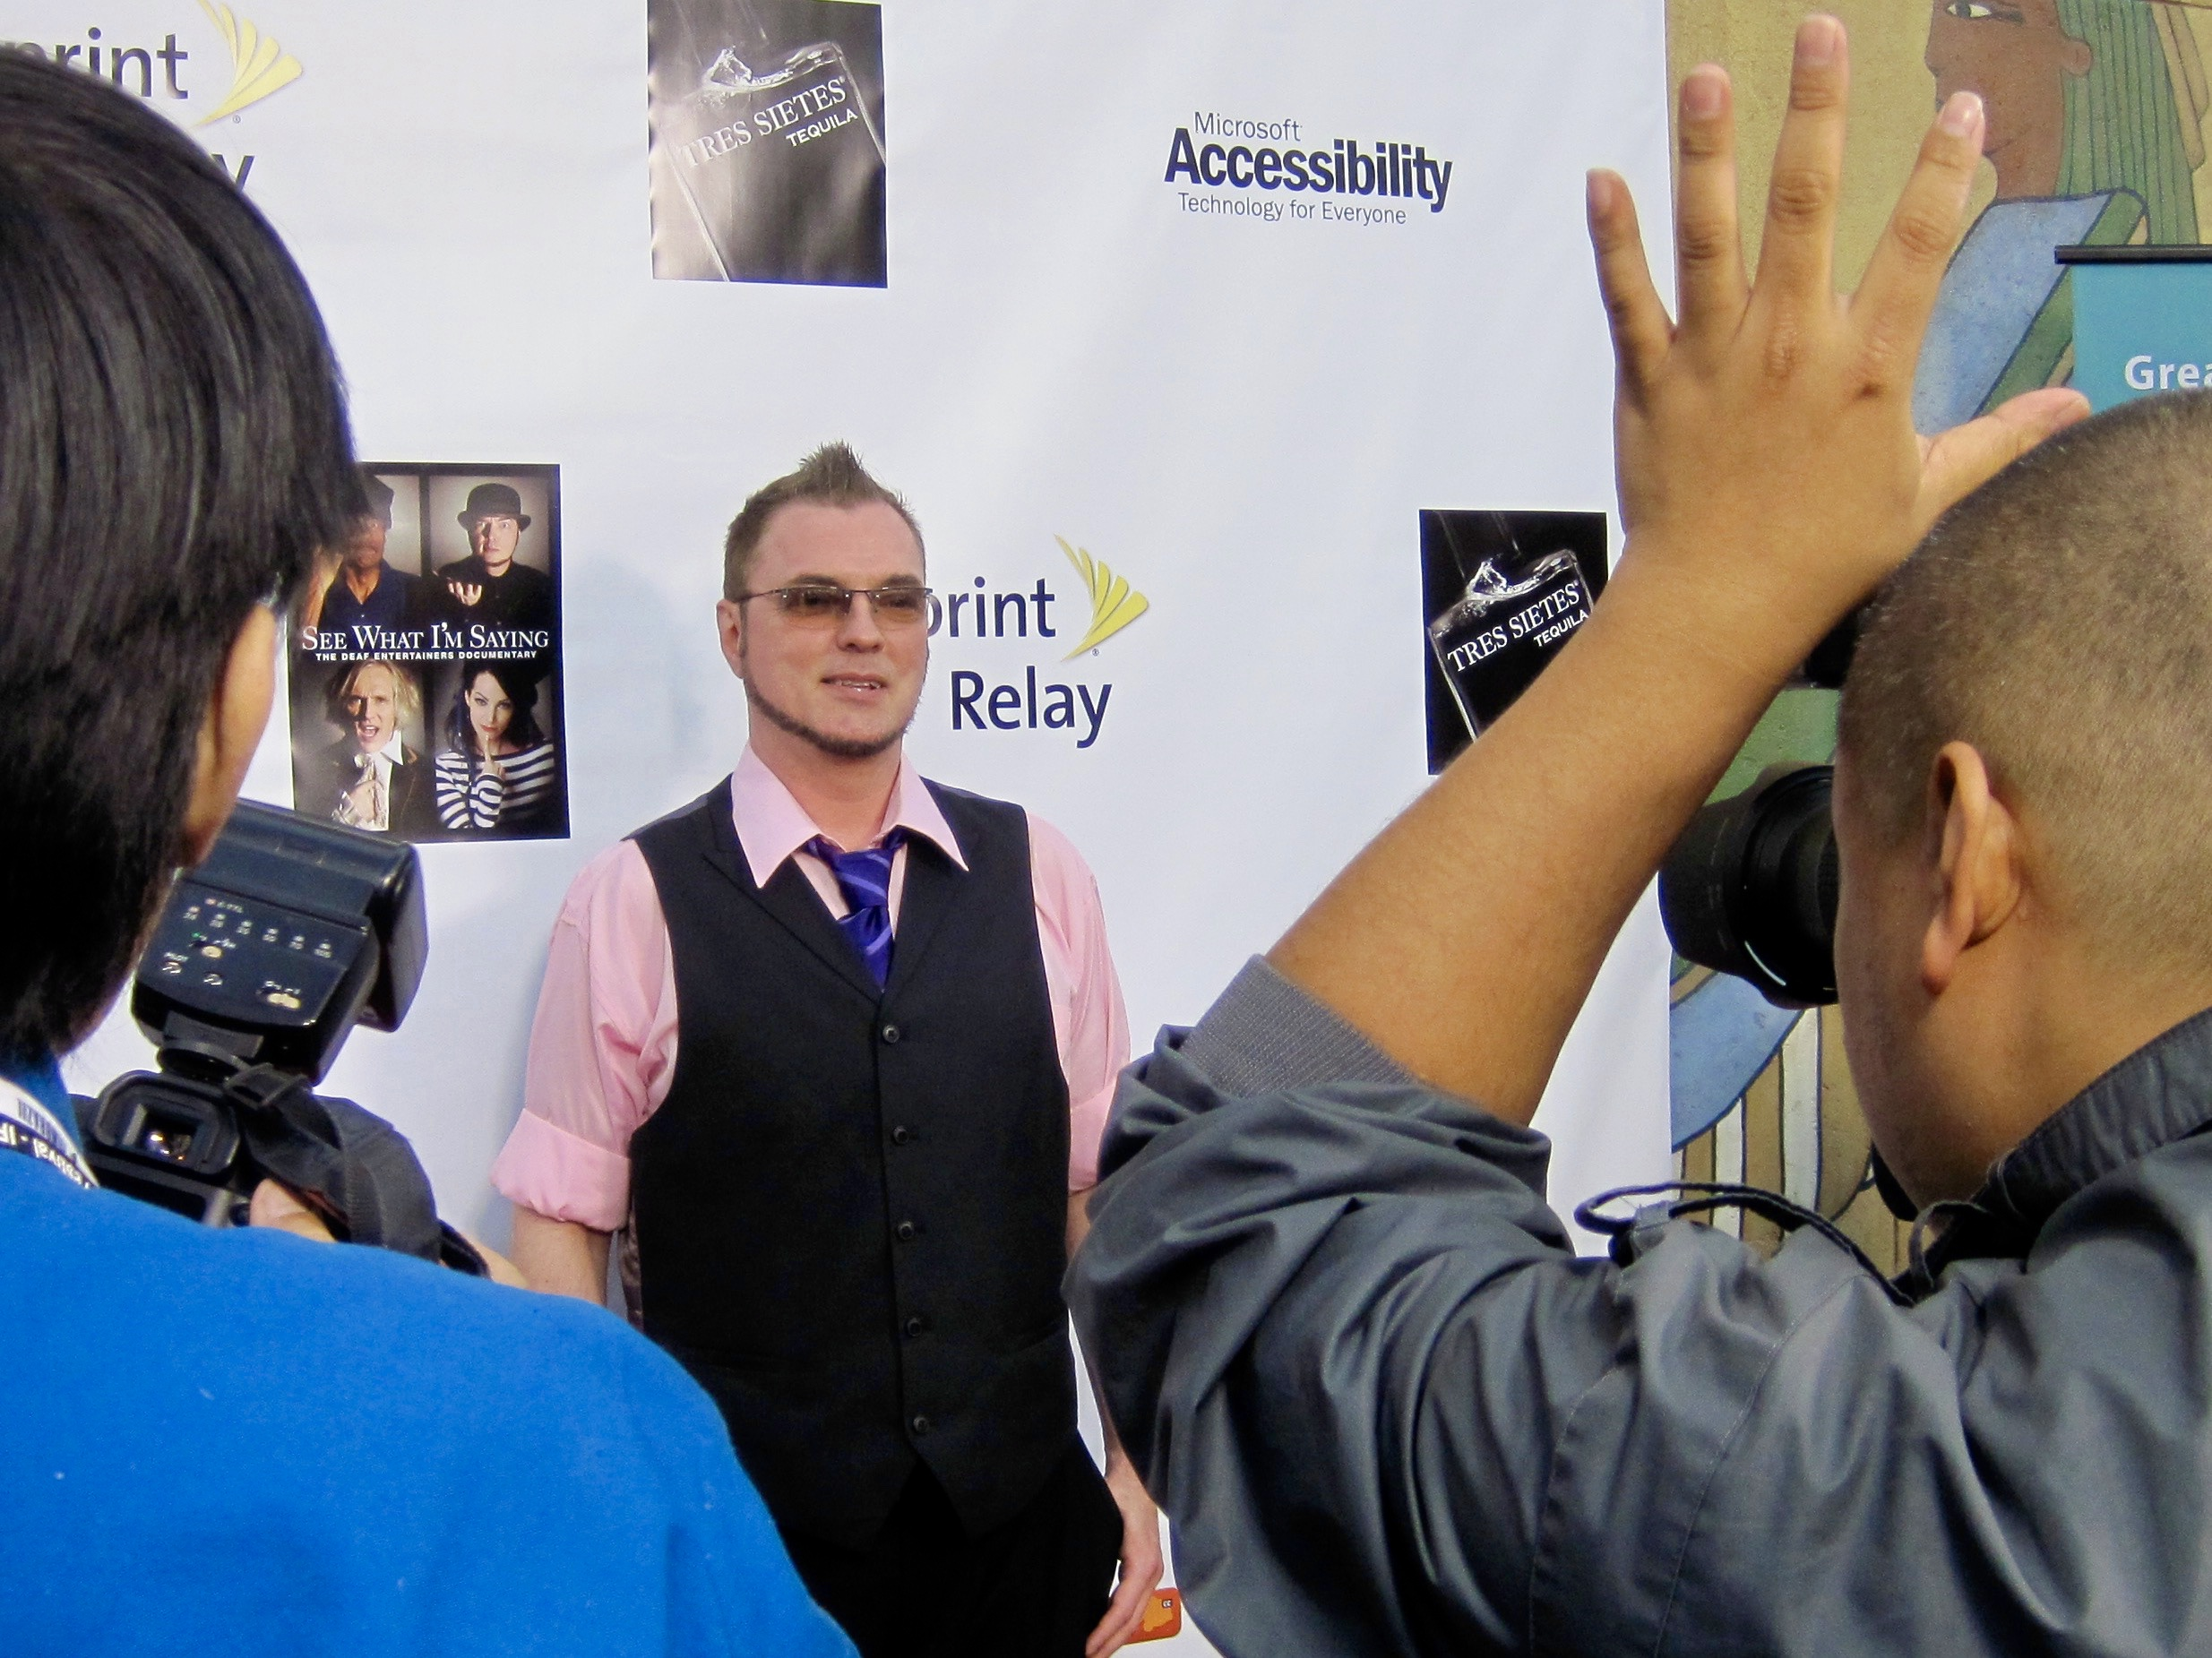 Actor Robert DeMayo at the Egyptian Theatre for the premiere of Wordplay, Inc.'s feature documentary  See What I'm Saying , directed by Hilari Scarl.  Photo by John Drouillard.